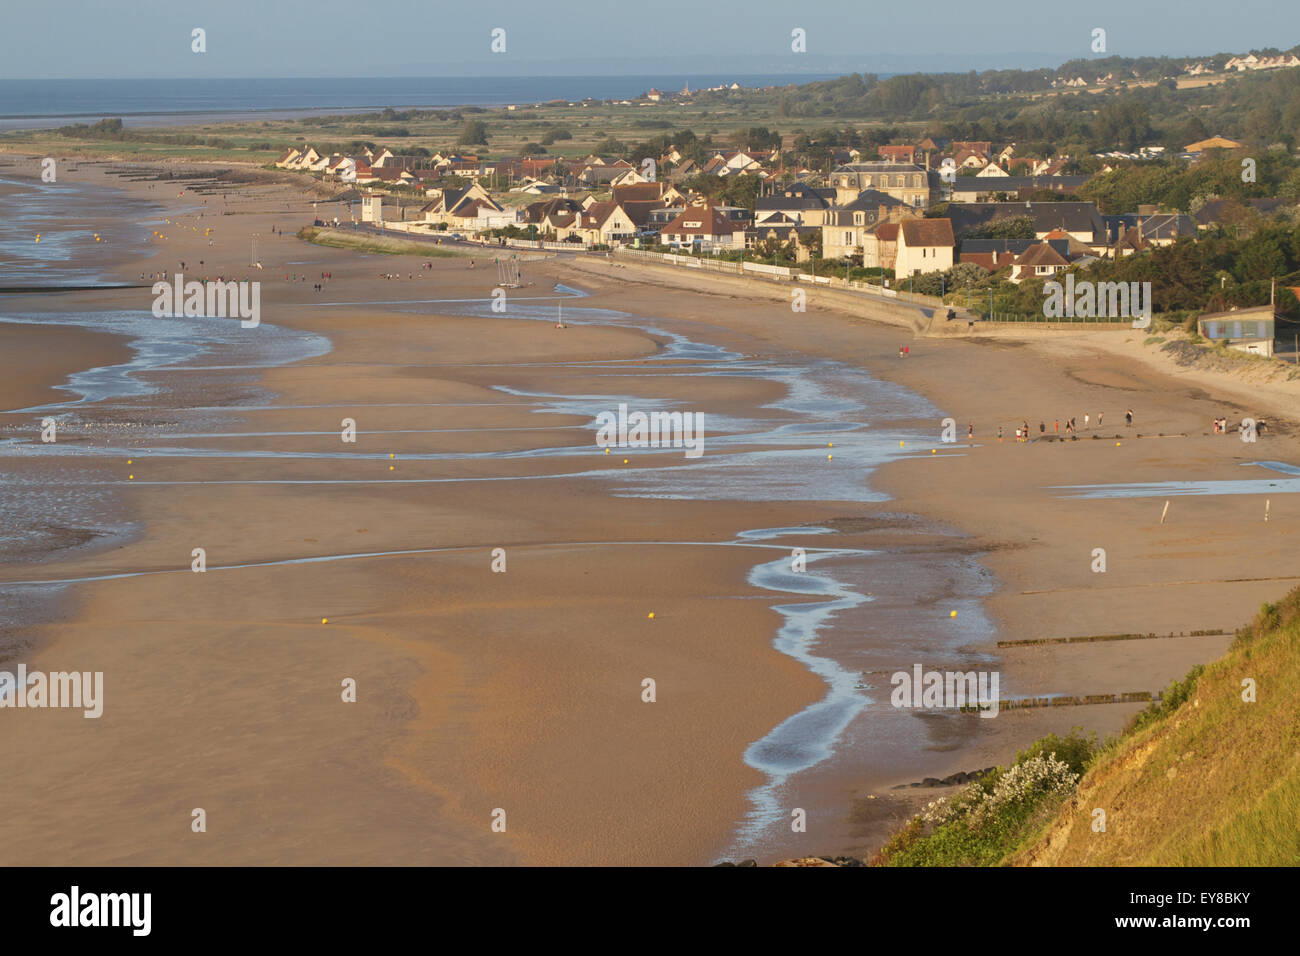 normandy beach christian singles D-day beaches is ranked #1 out of 9 things to do in normandy see pictures and our review of d-day beaches.